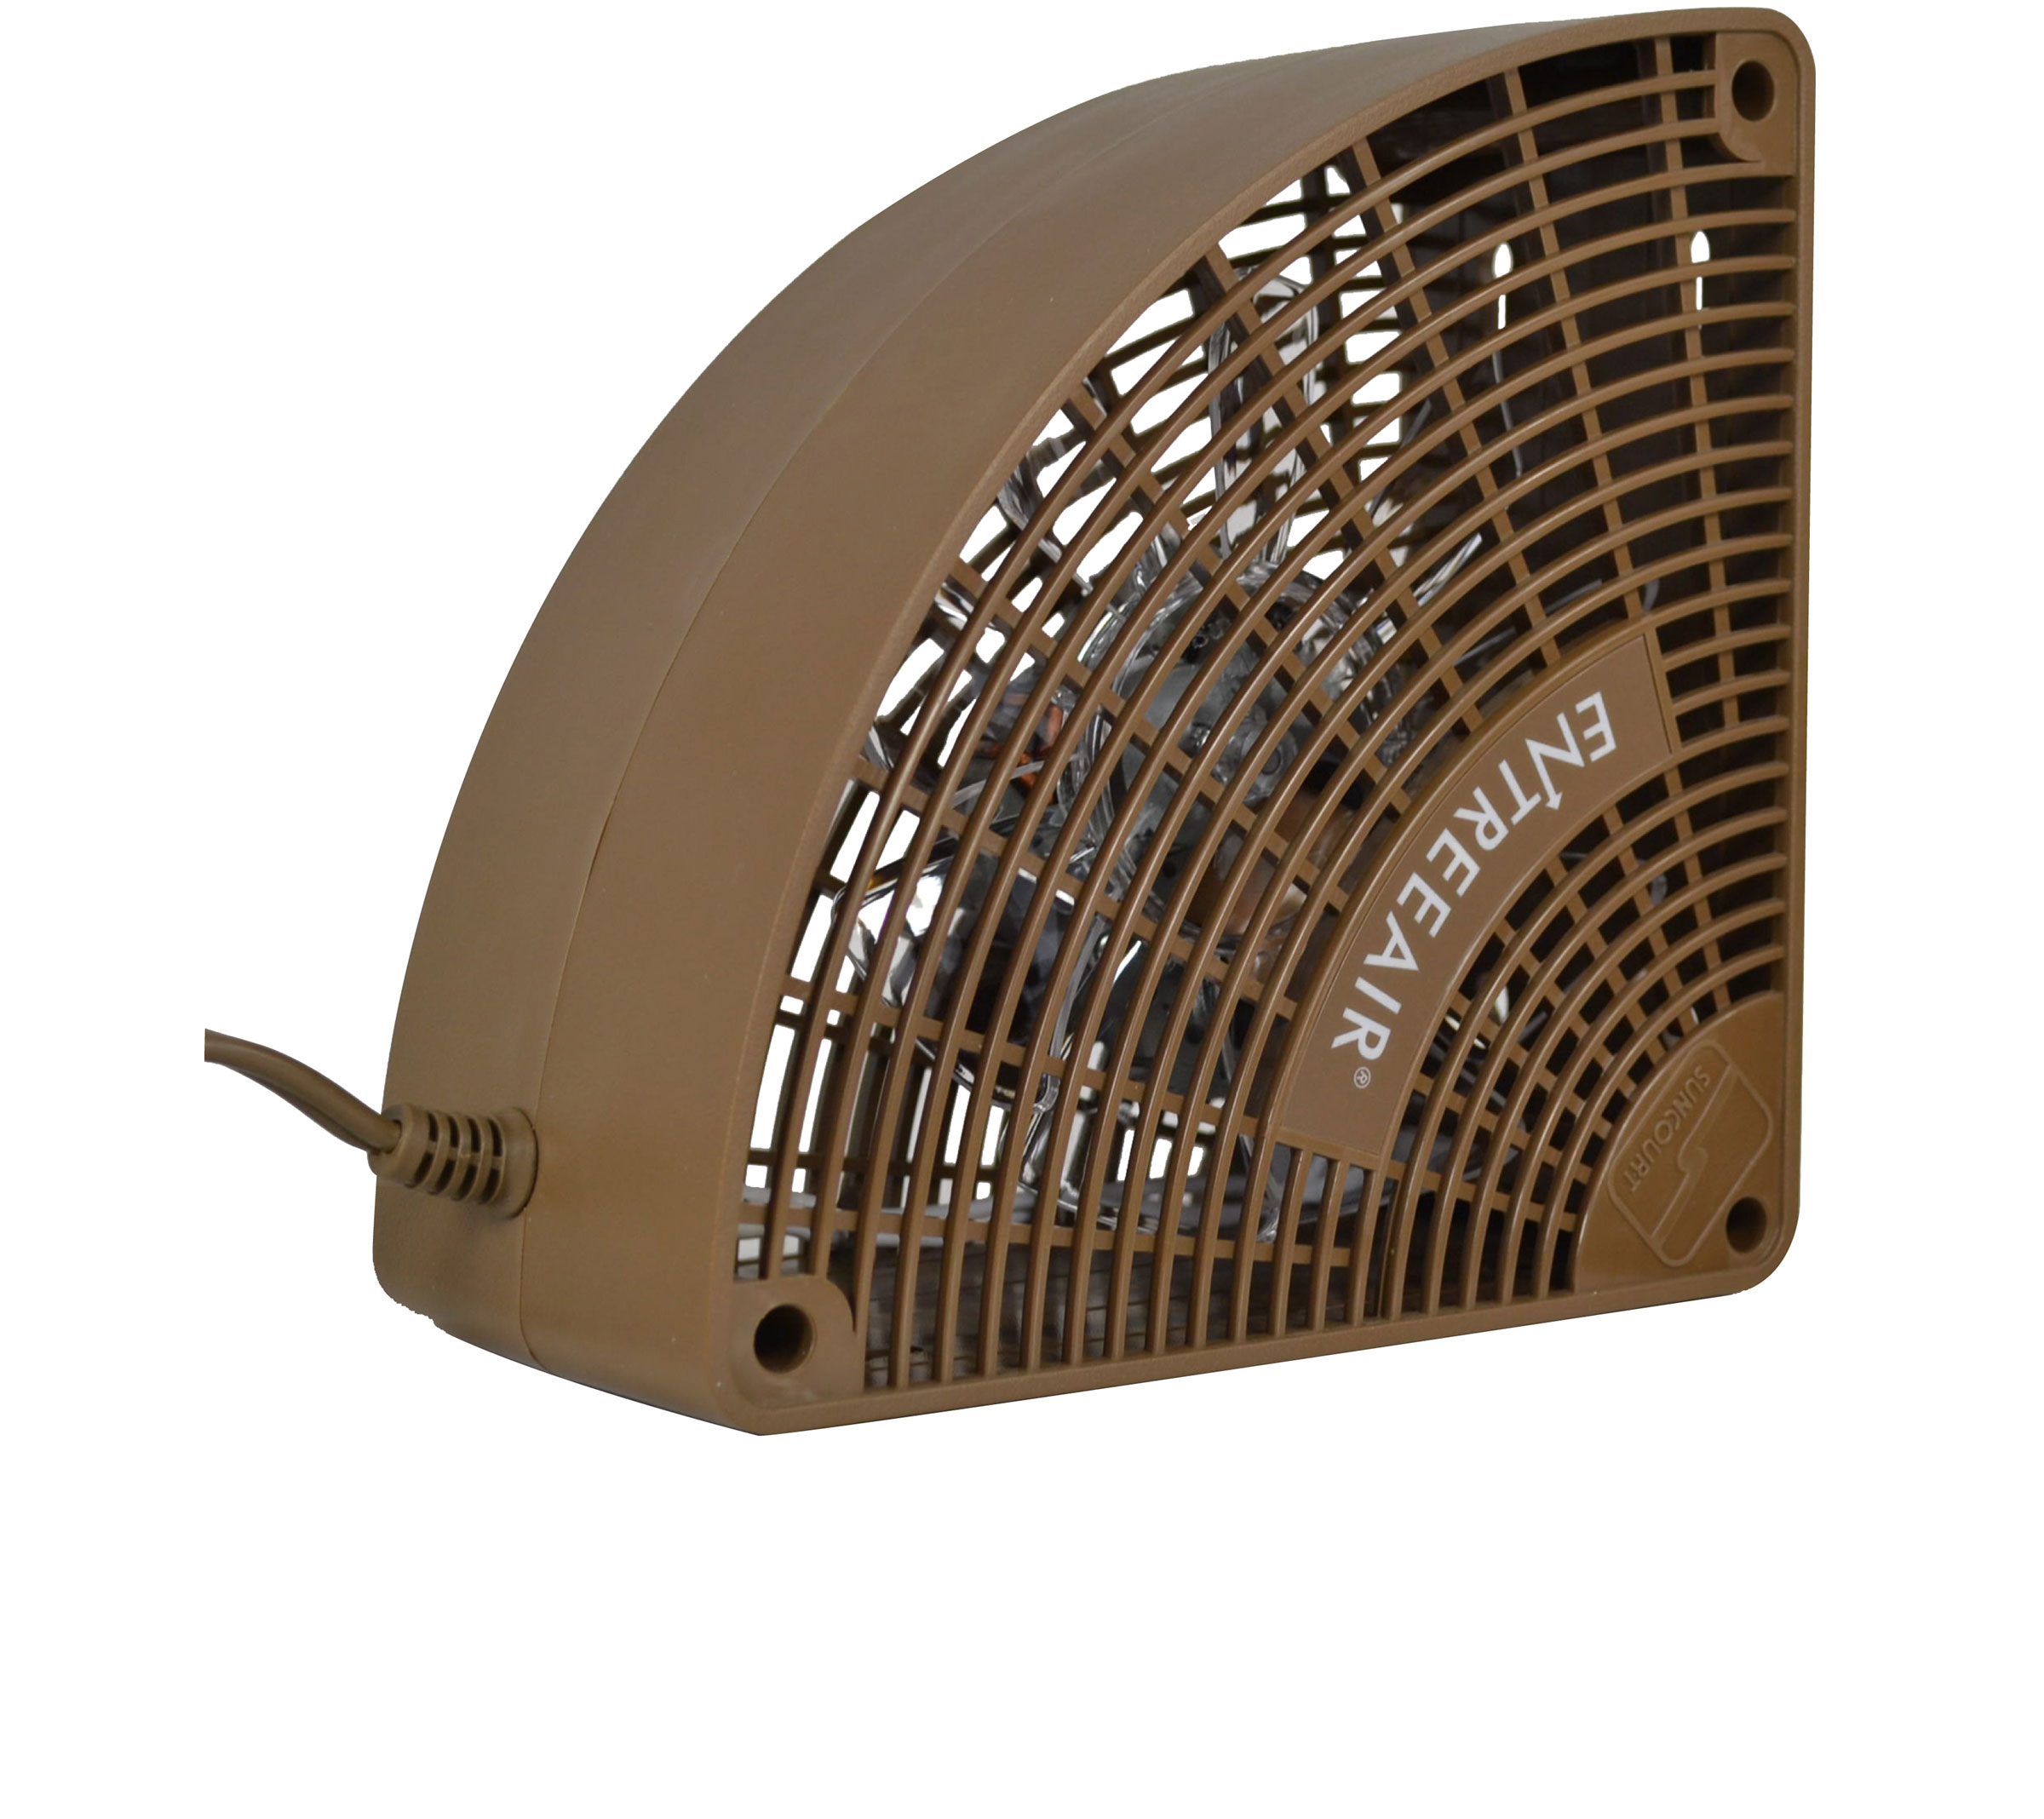 entreeair door frame fan brown rr100 b